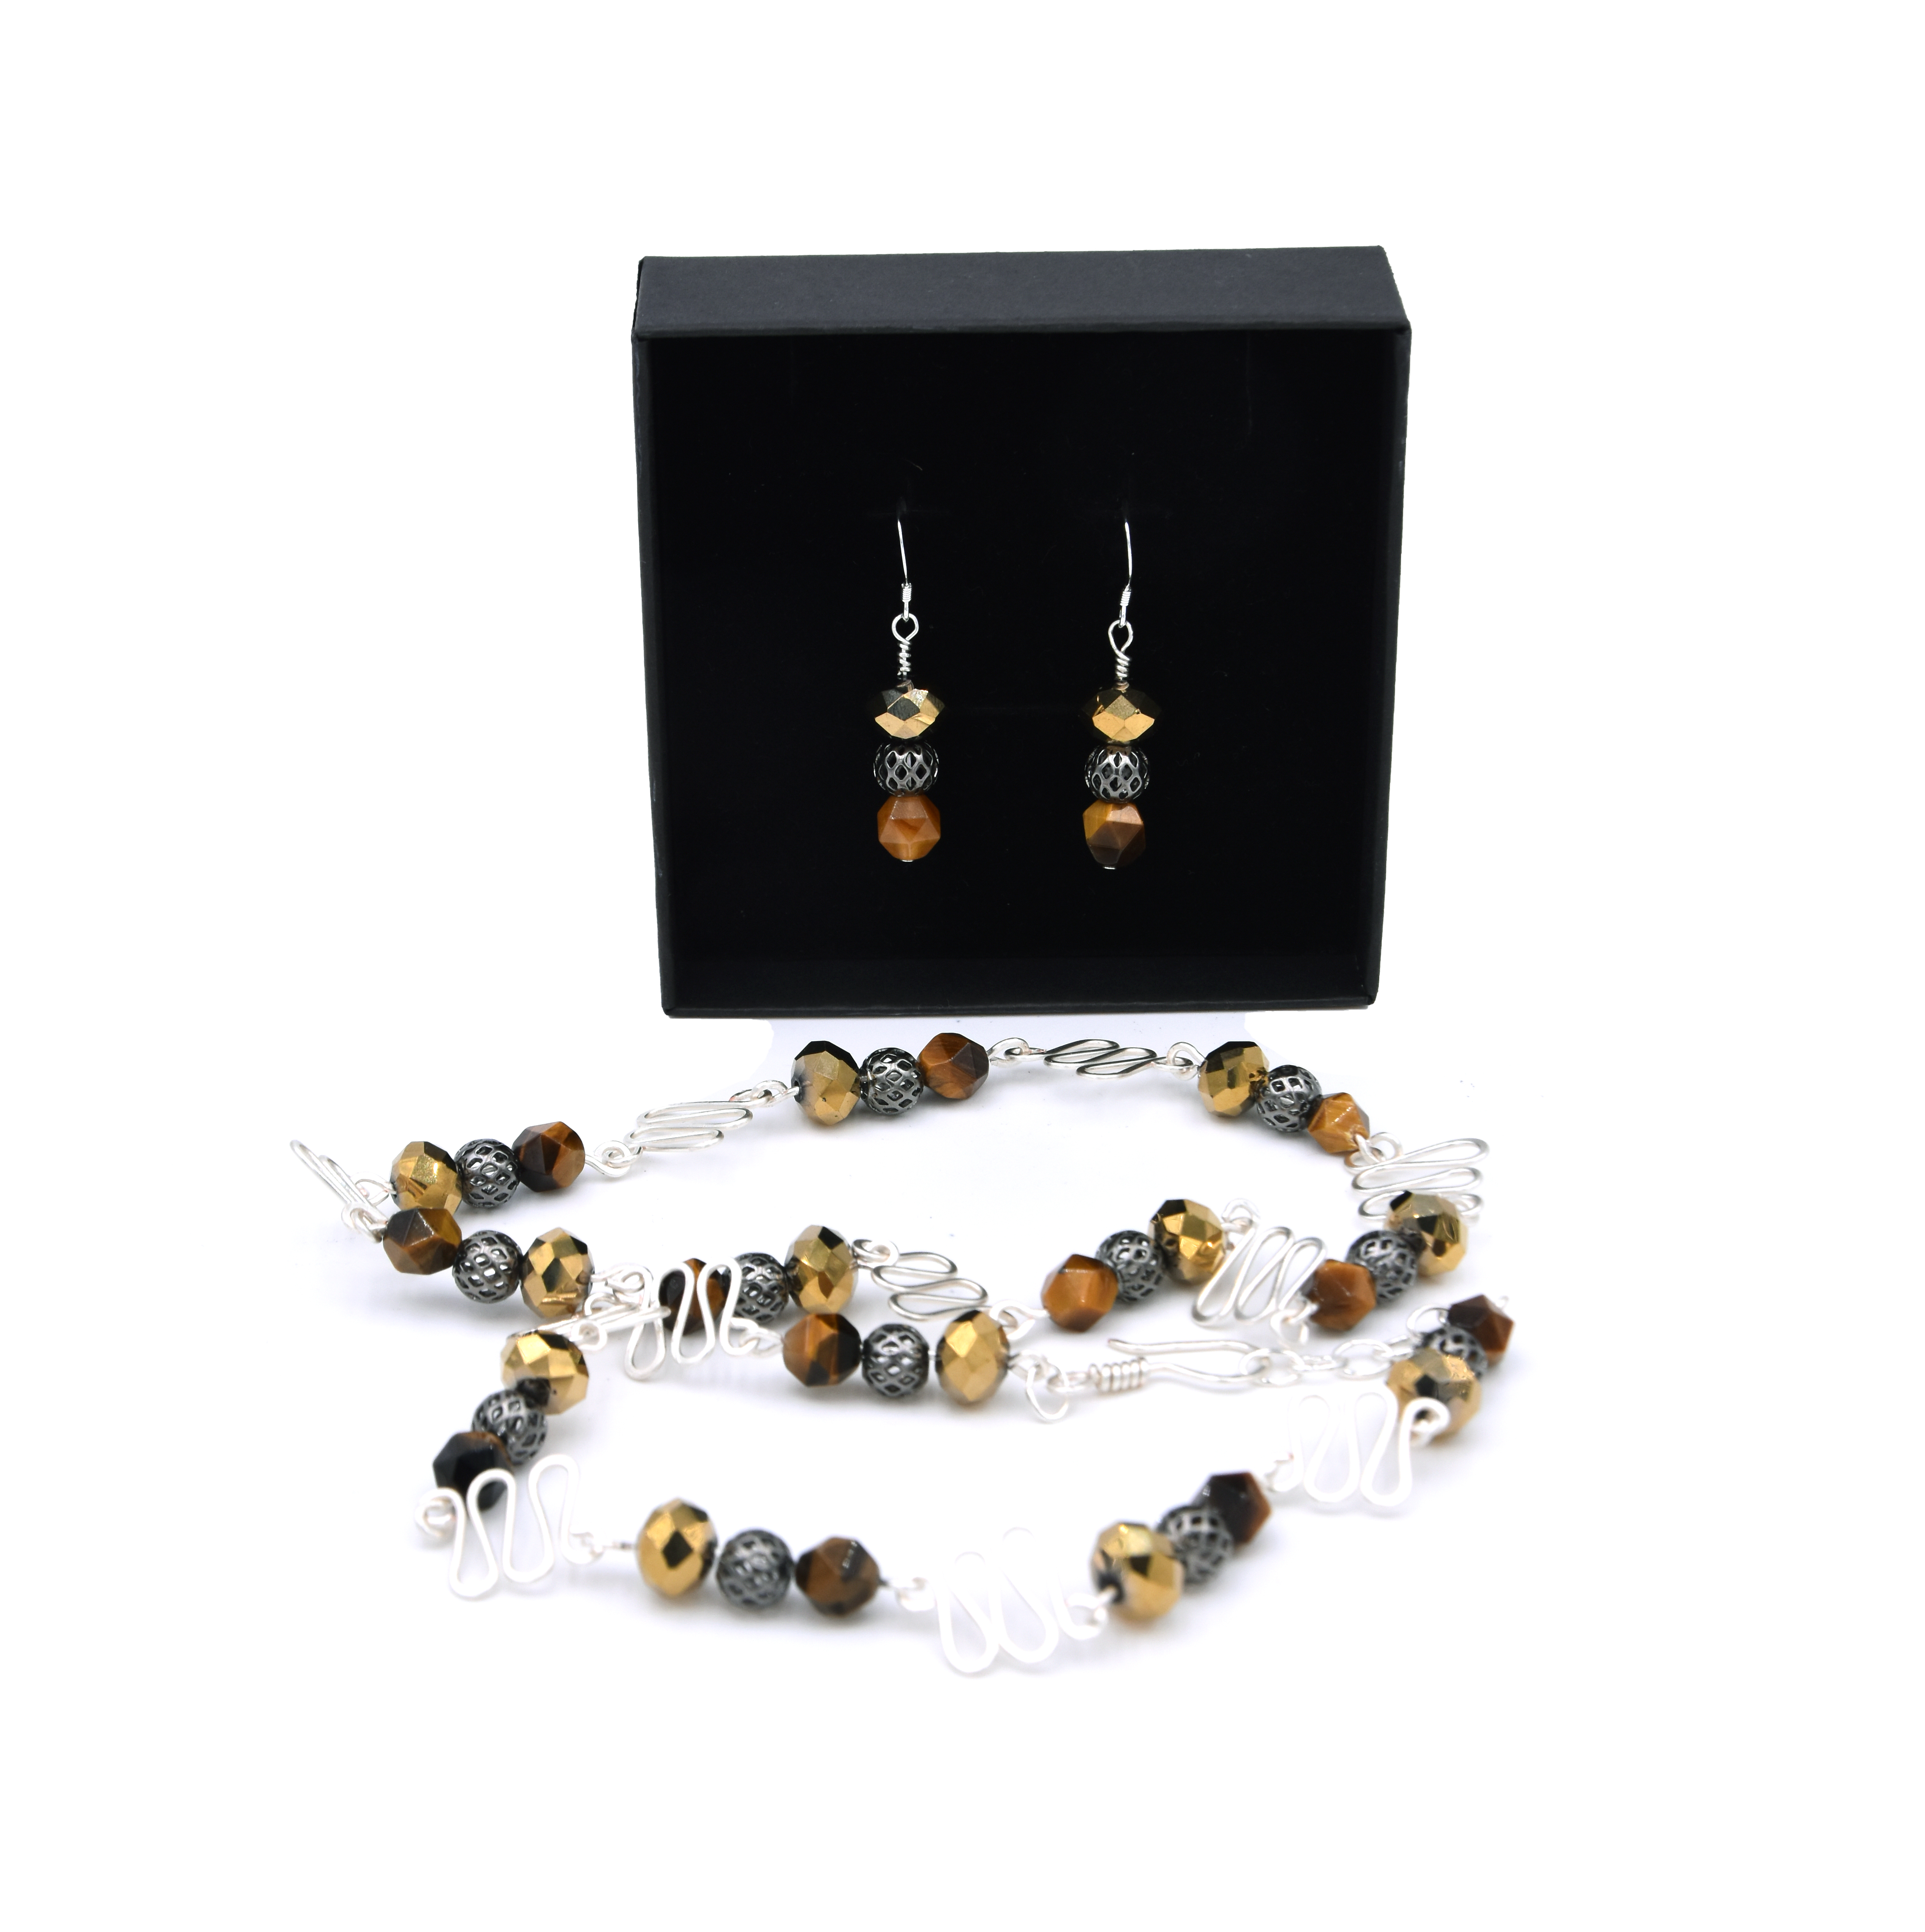 Gabriella Szekely jewellery - filigree and glass bead pendant and earing as a set displayed in a jewellery box - silver beads golden glass bead and tiger eye brown orange beads with handmade findings 2